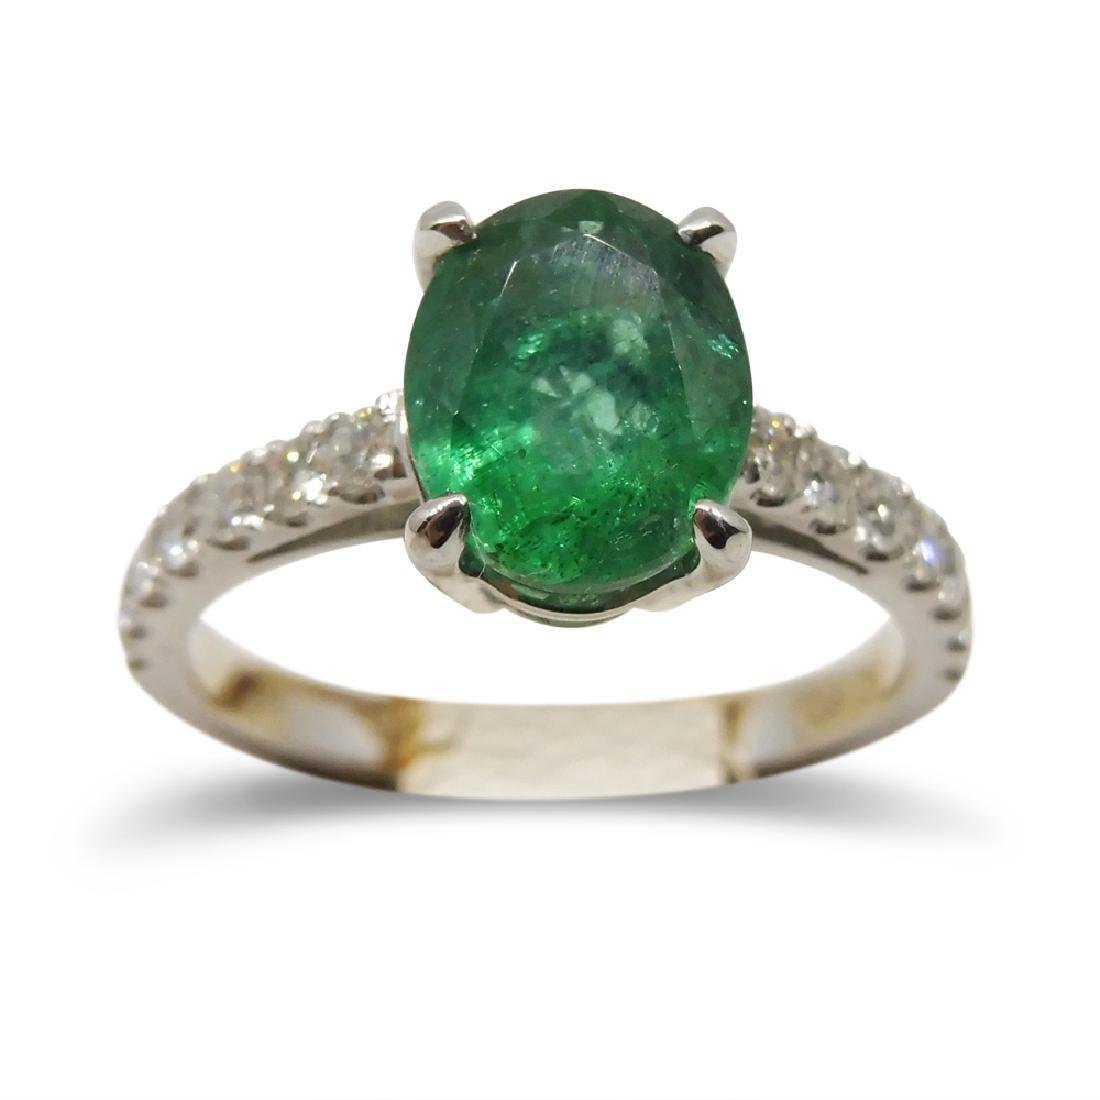 14K White Gold Emerald Diamond Ring, 1.82ct